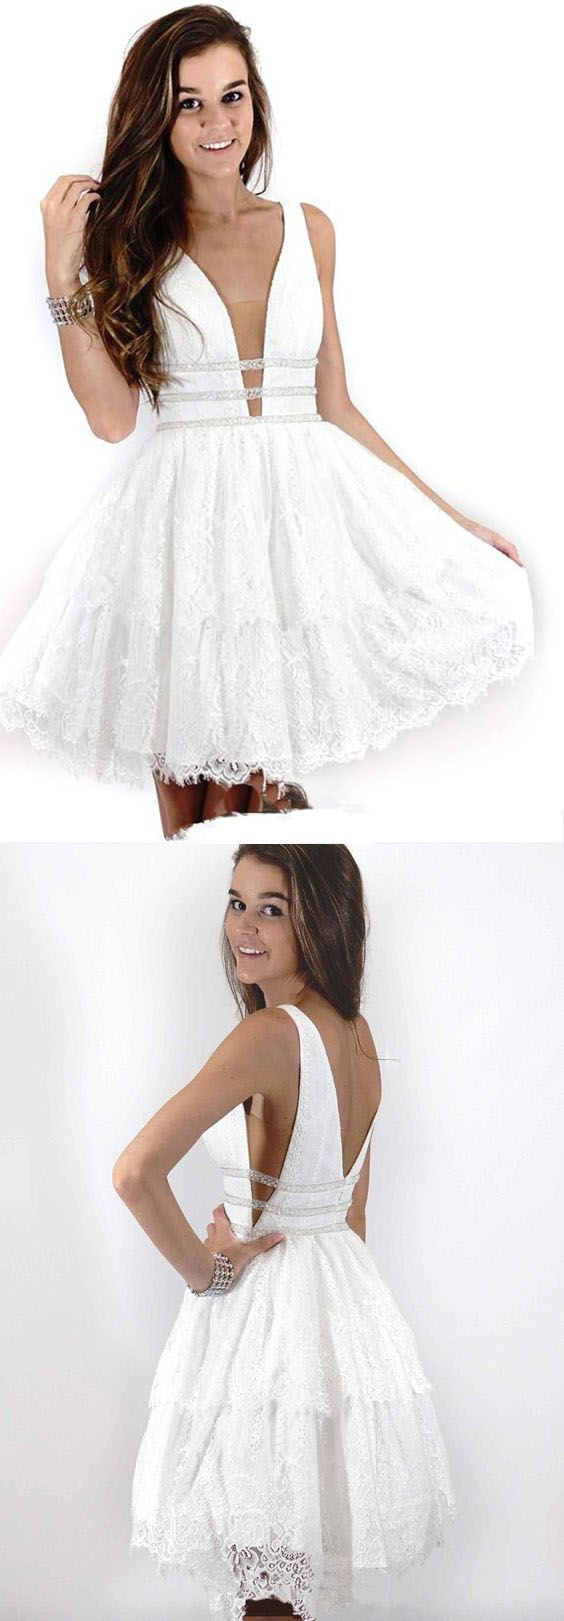 Deep neck short prom dress white lace homecoming dress pg lace